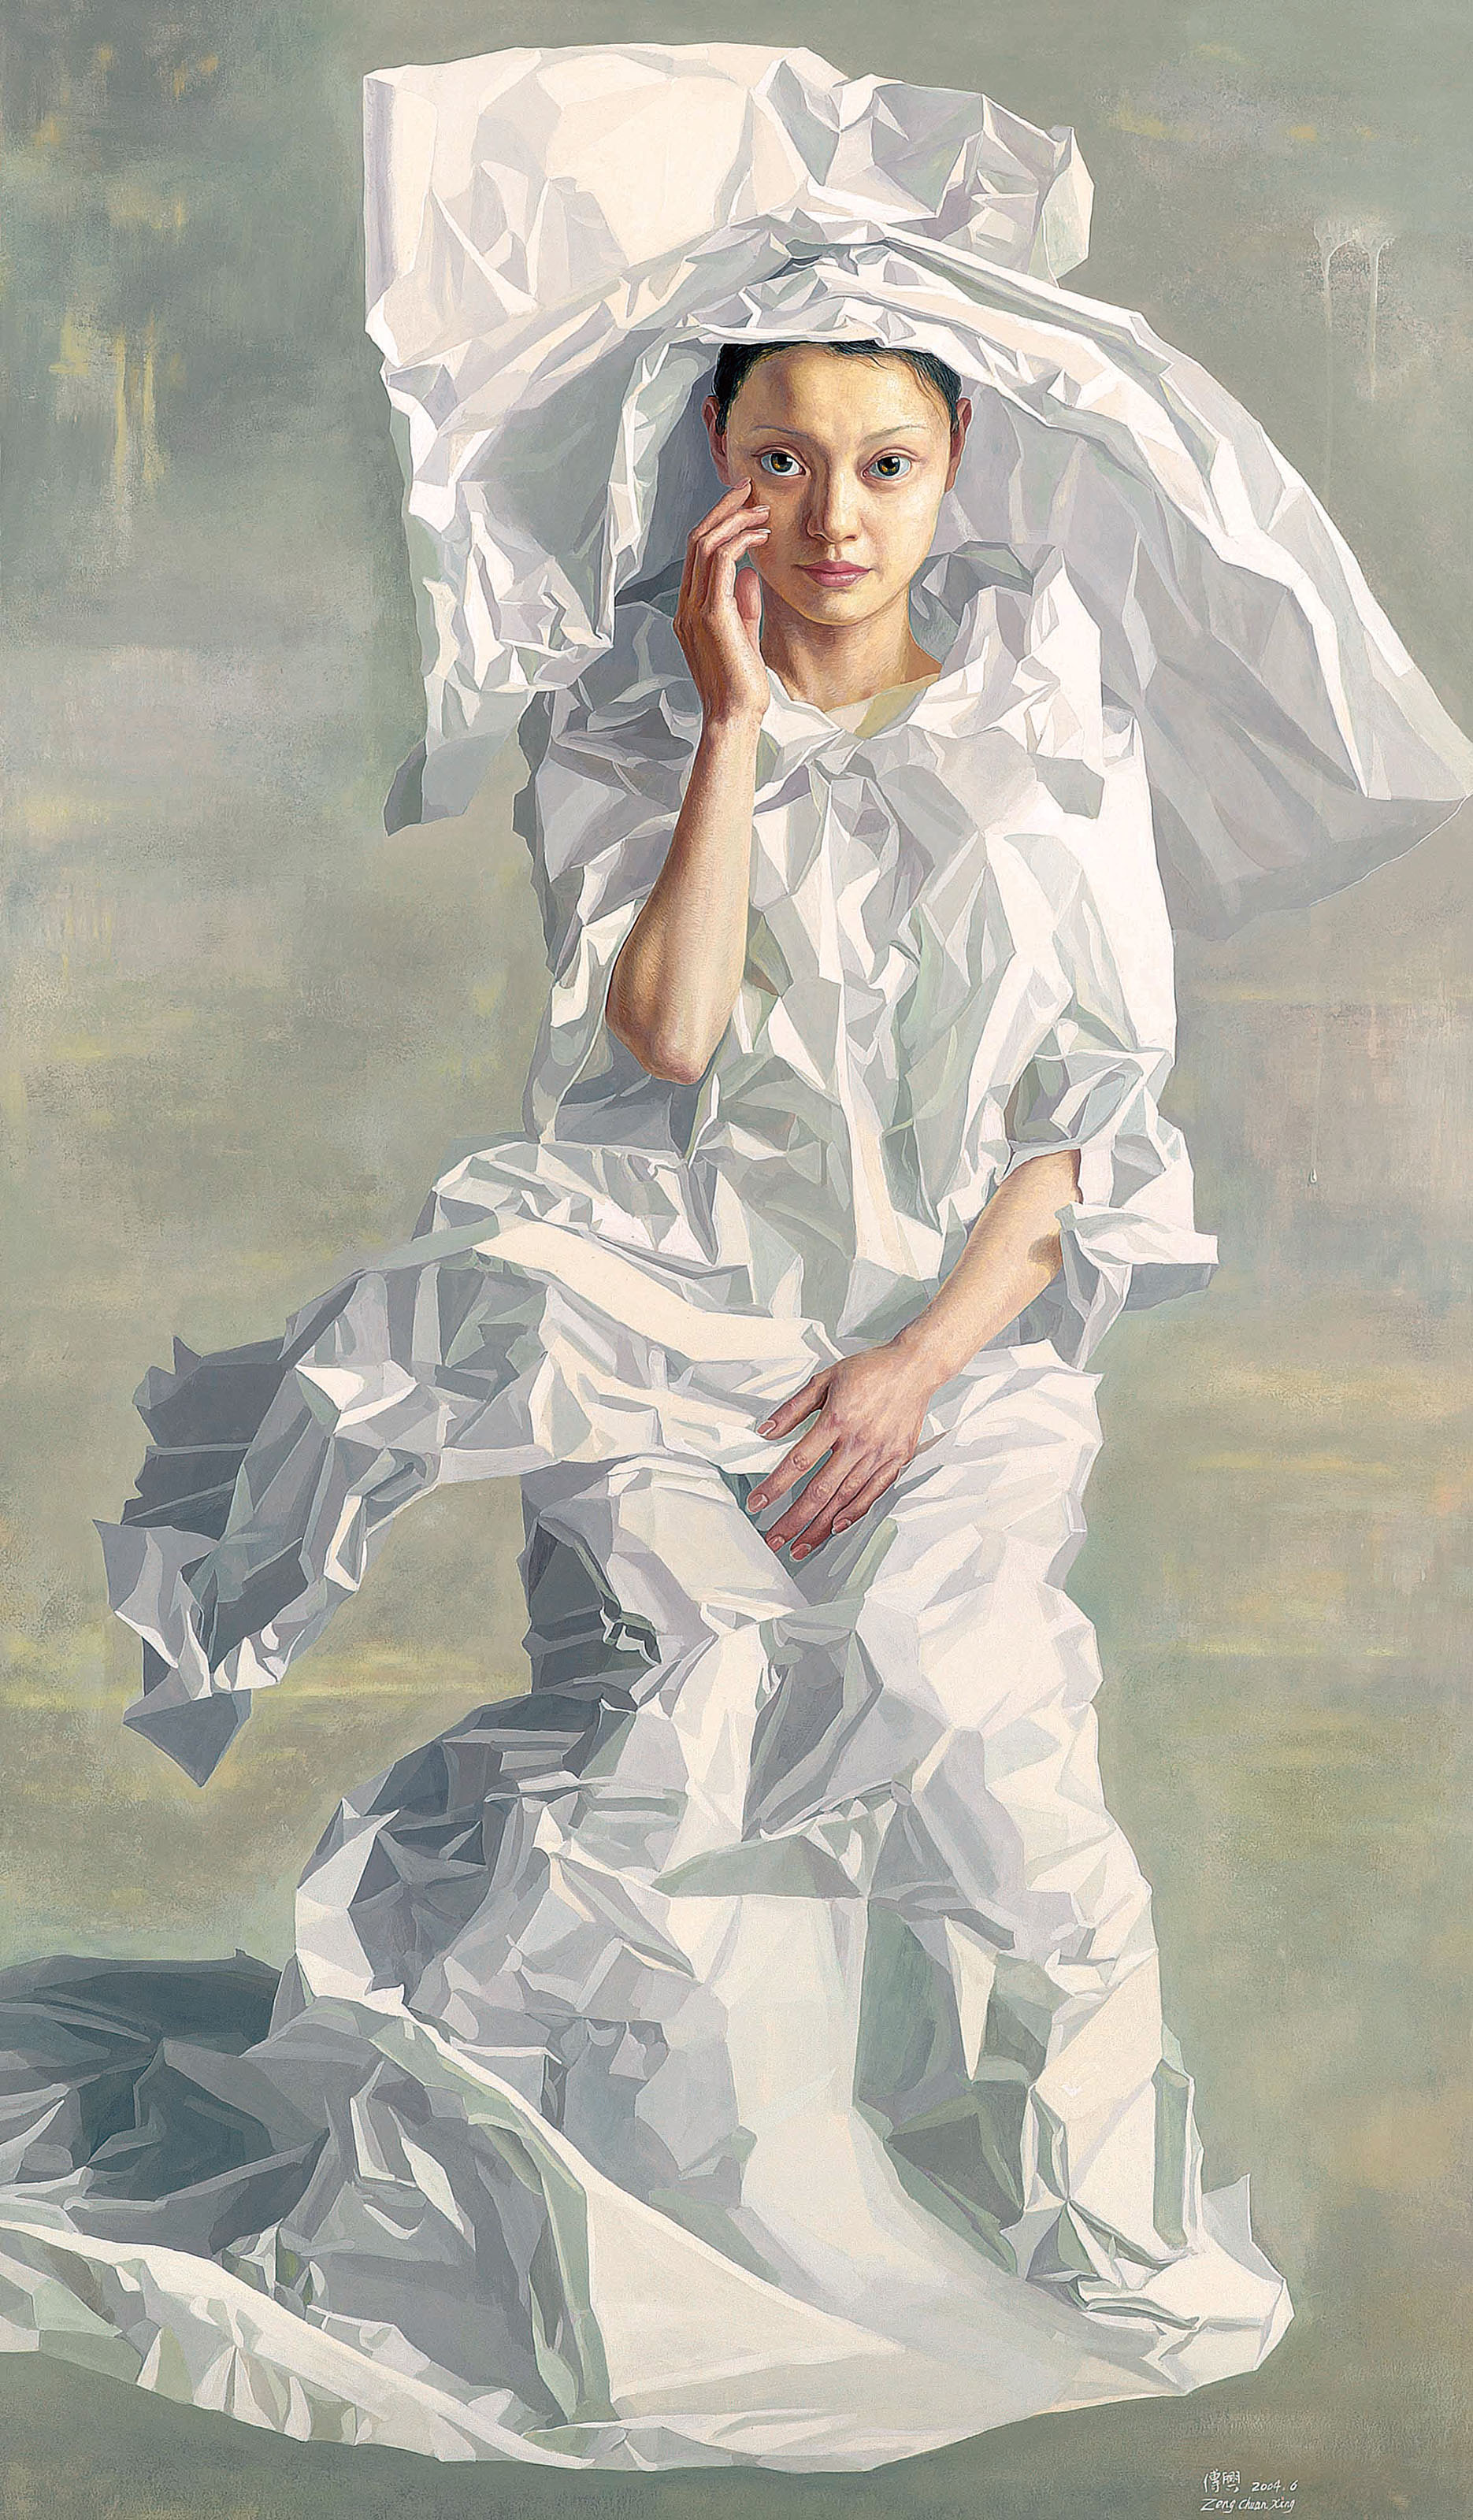 Paper Lady (from the Paper Bride series)